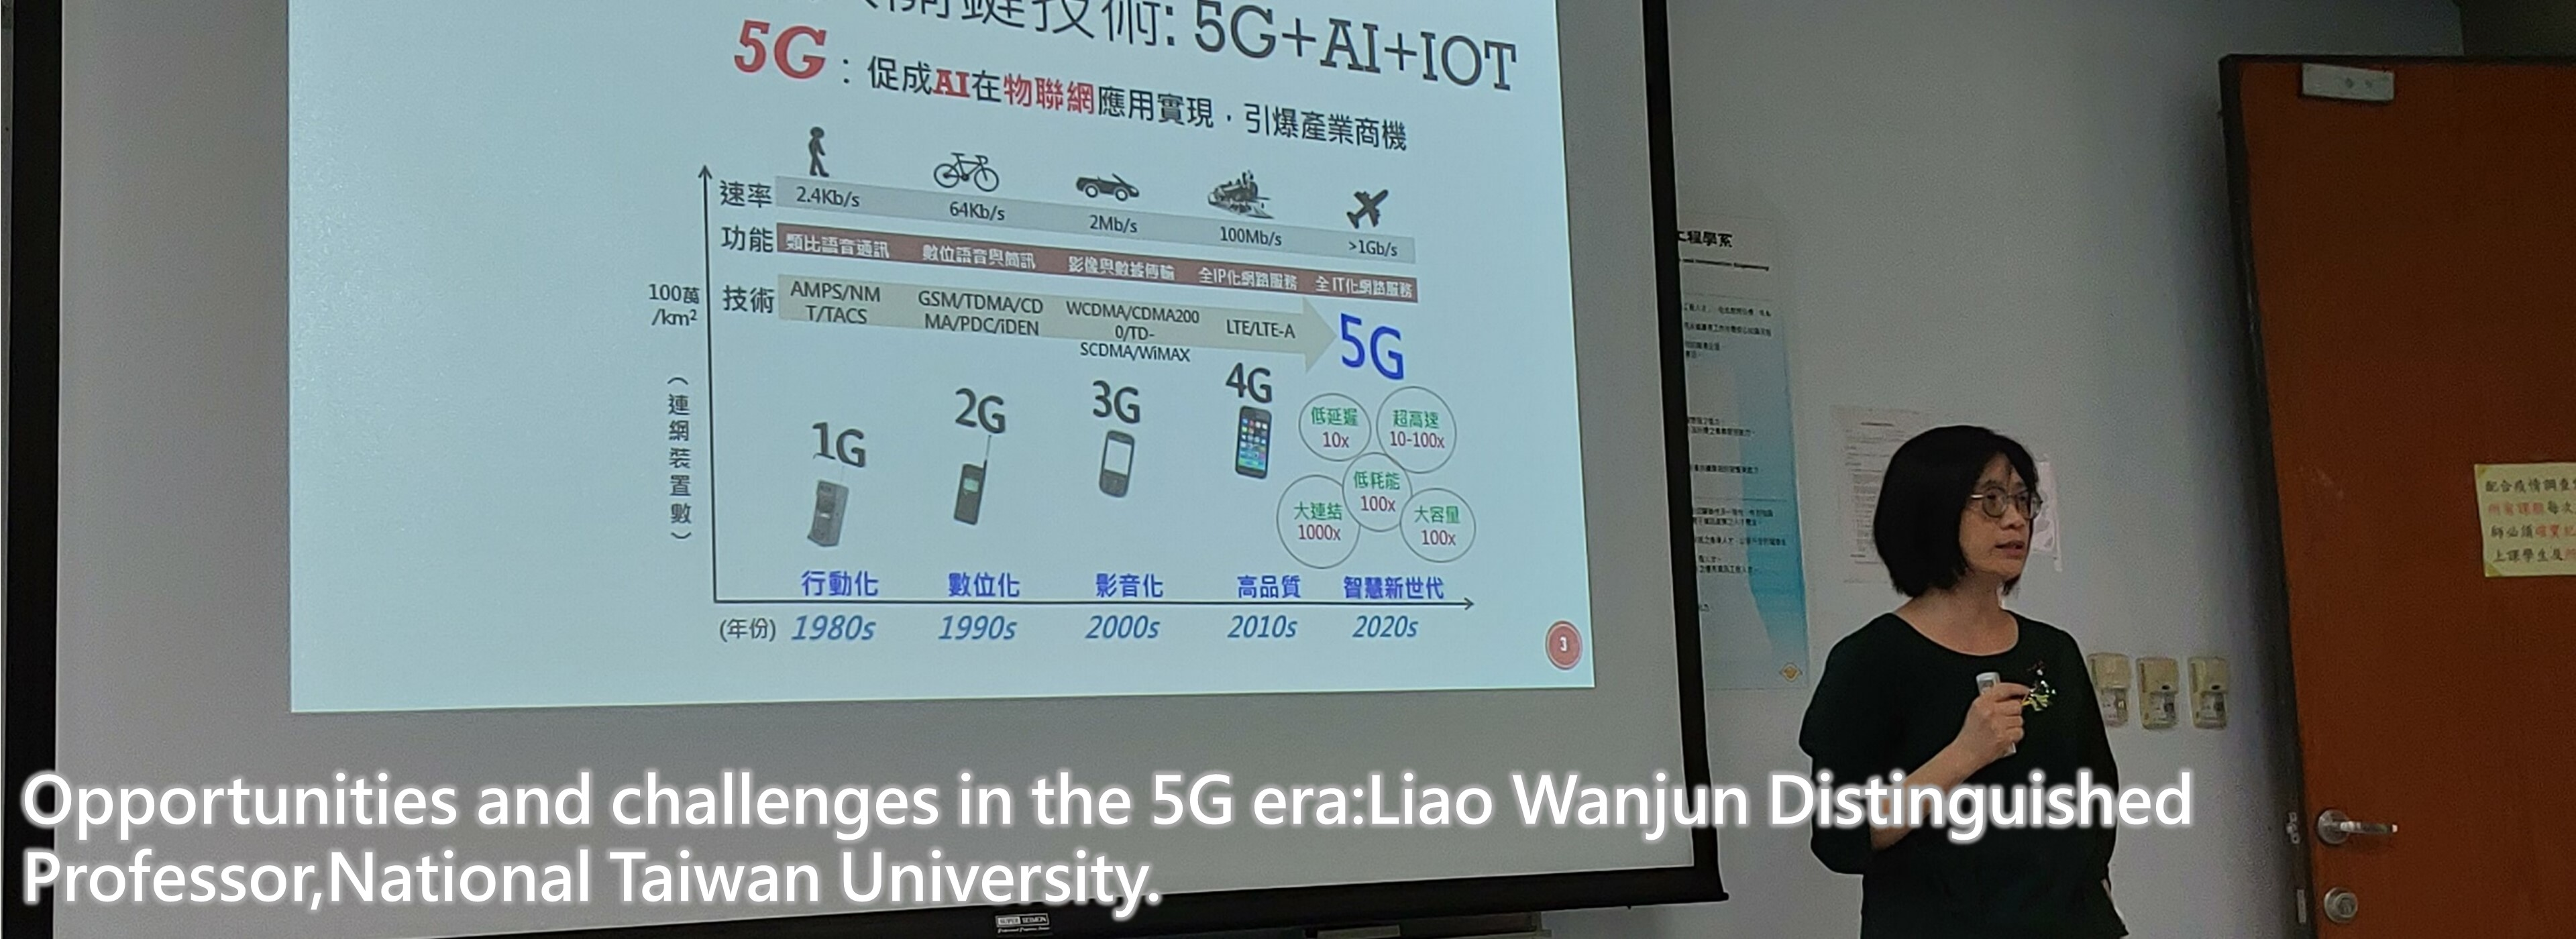 Opportunities and challenges in the 5G era:Liao Wanjun Distinguished Professor,National Taiwan University.